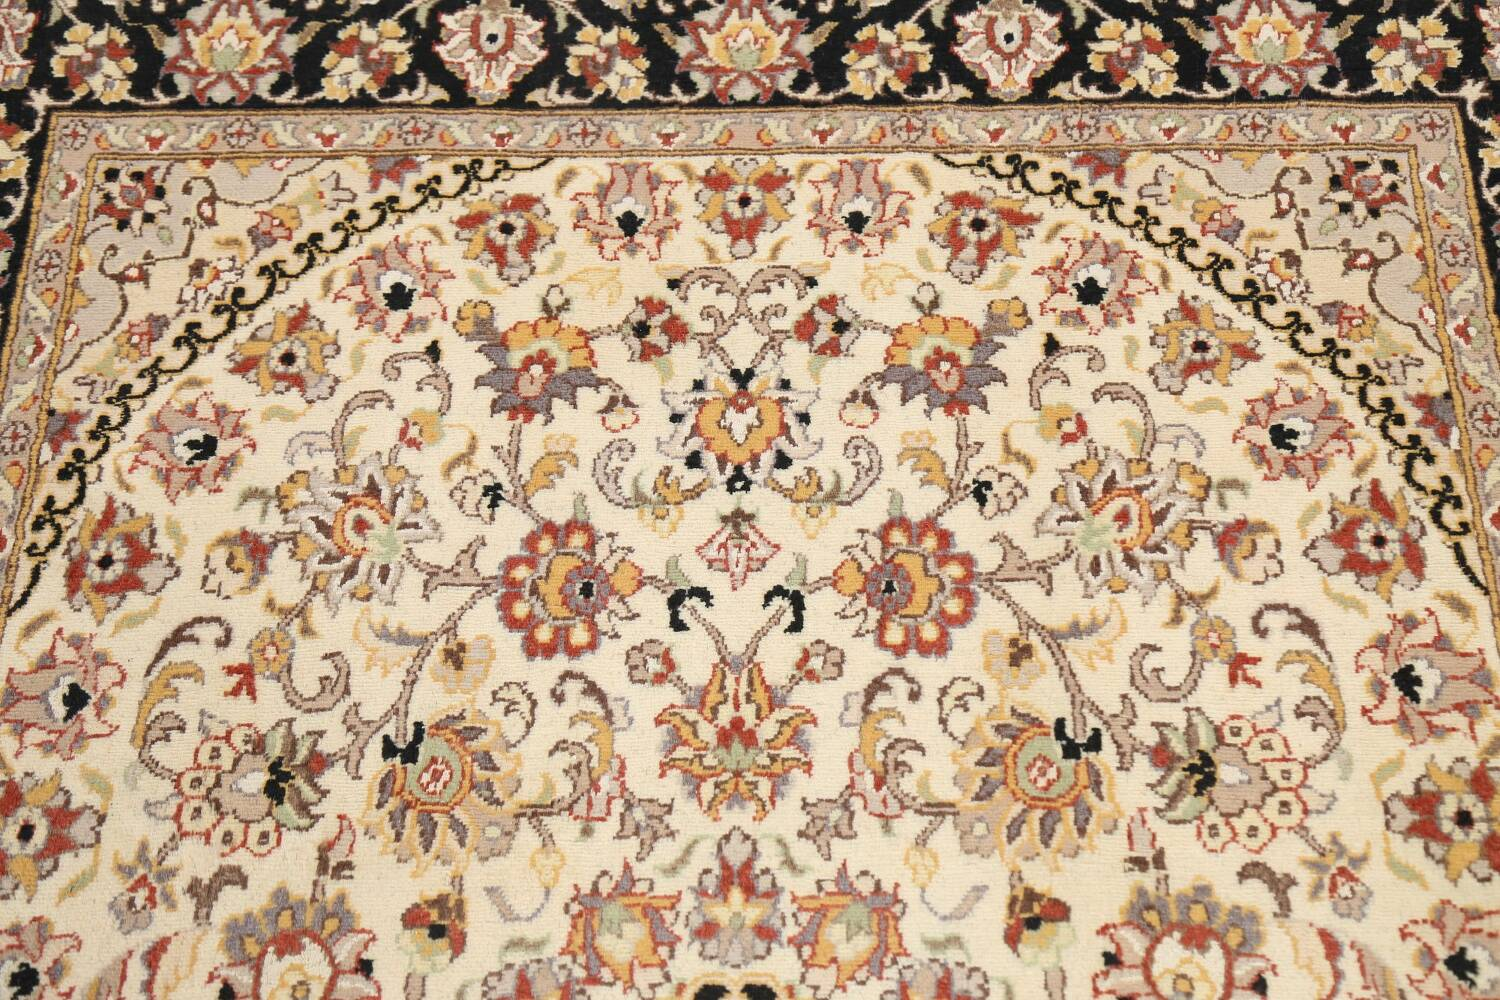 Vegetable Dye Floral Tabriz Oriental Area Rug 4x6 image 9